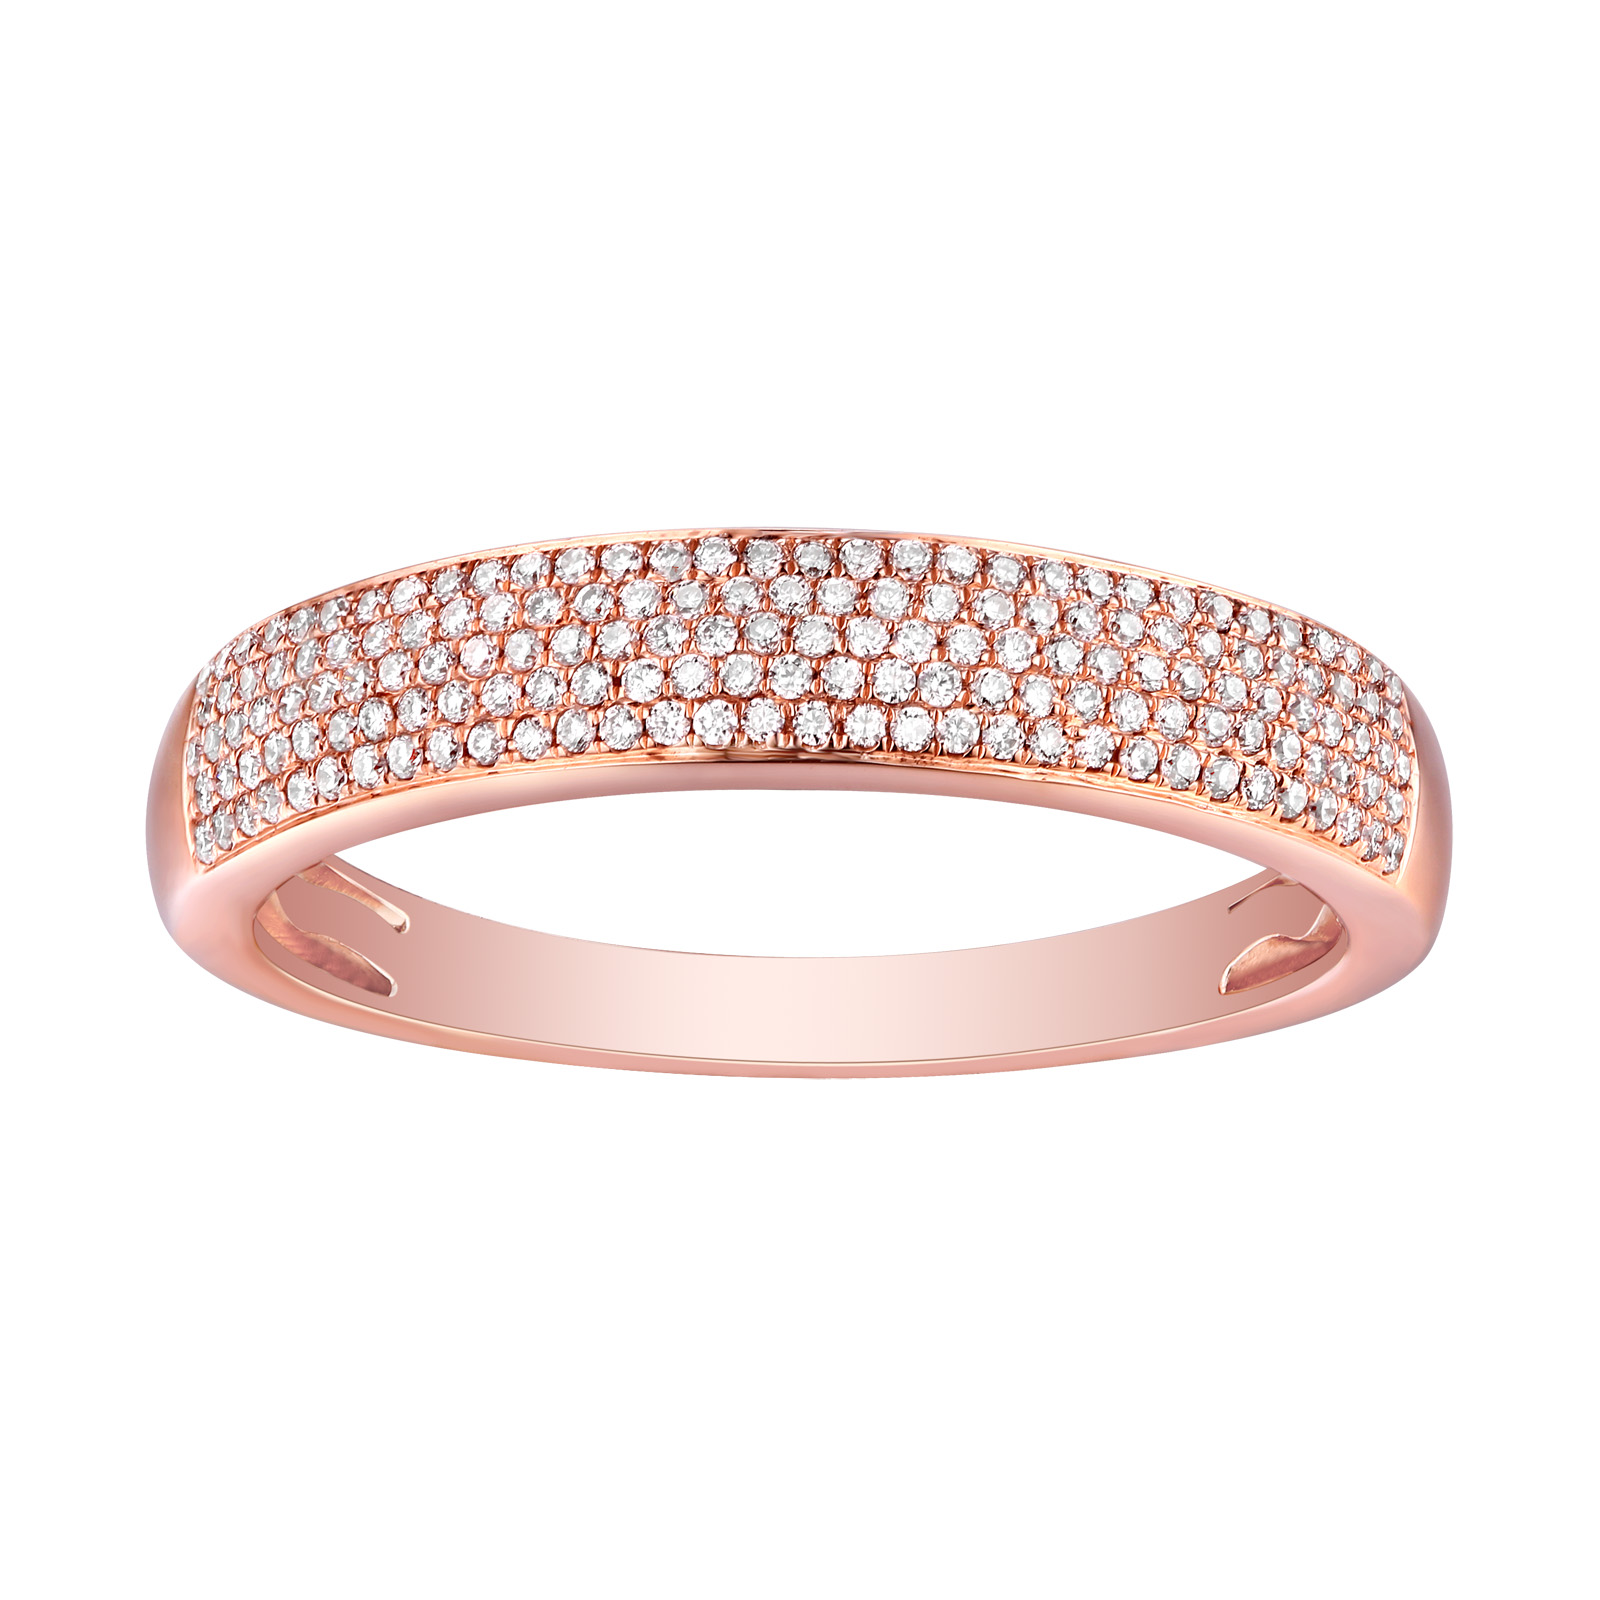 R25962WHT – 14K Rose Gold Diamond Ring, 0.24 TCW